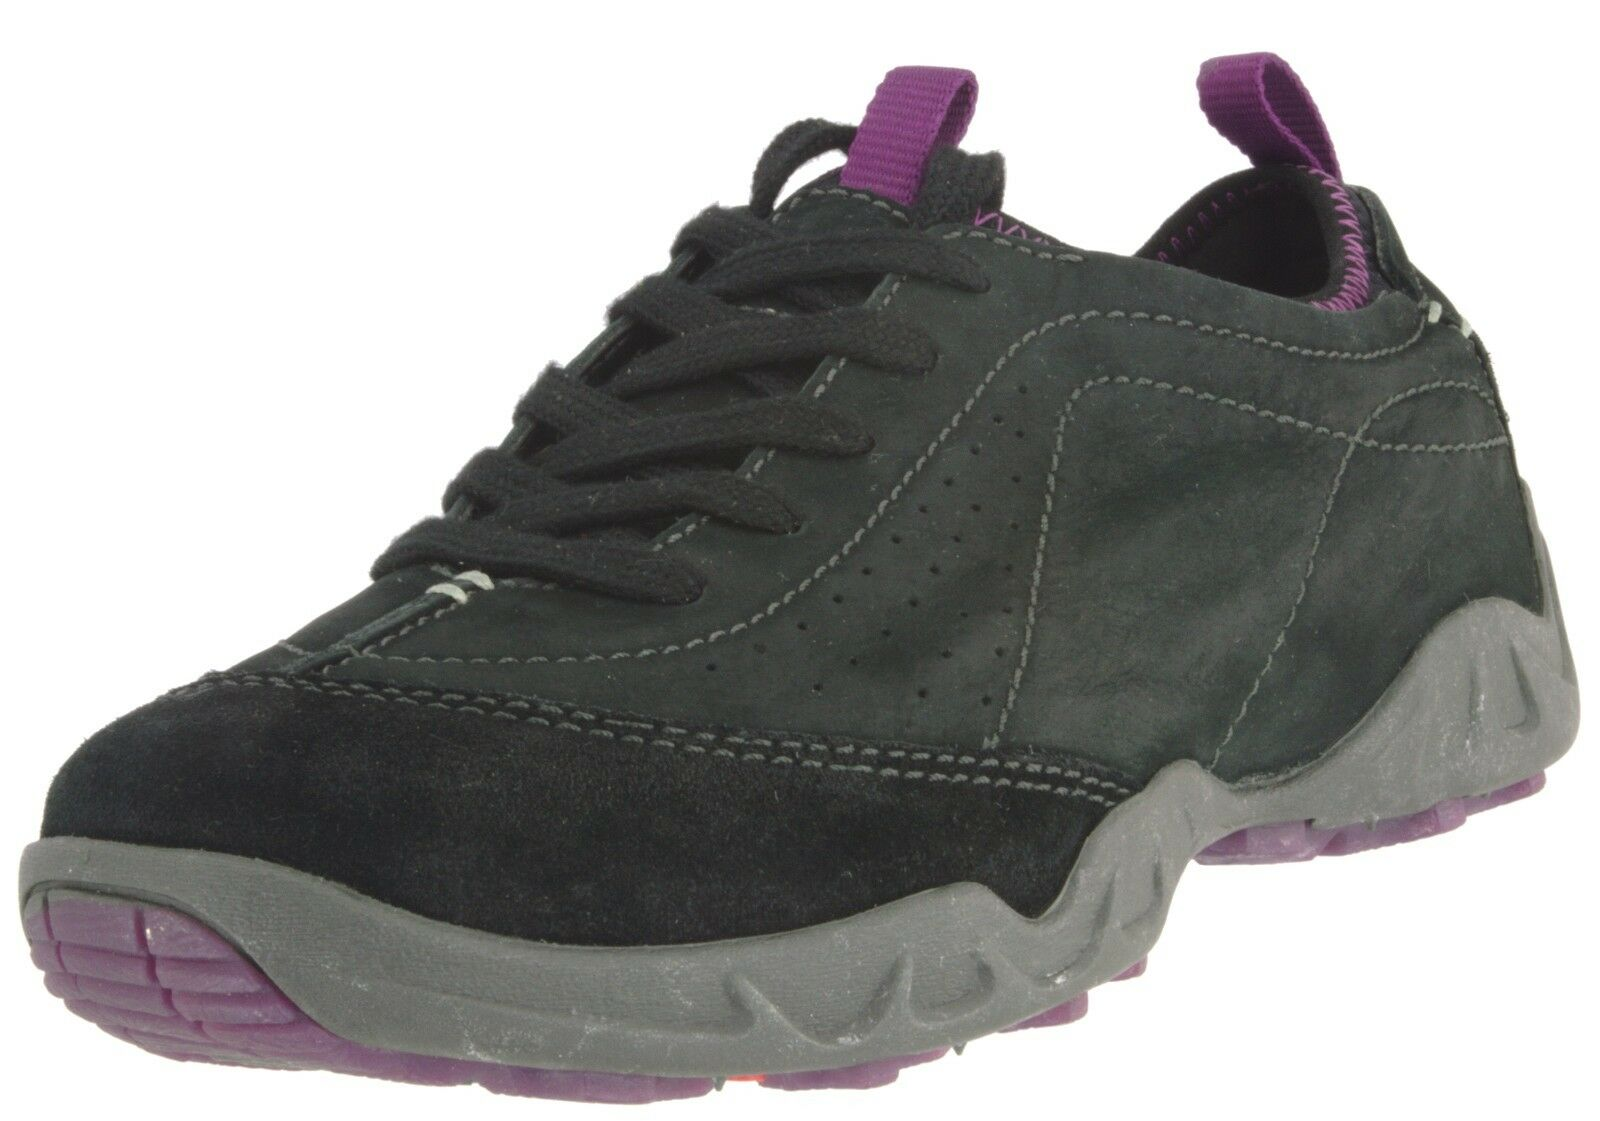 ECCO SAMPLE 851603 WOMEN'S SIERRA SUEDE  ATHLETIC SNEAKER SNEAKER SNEAKER SHOES EU 37 US 6-6.5 b04968